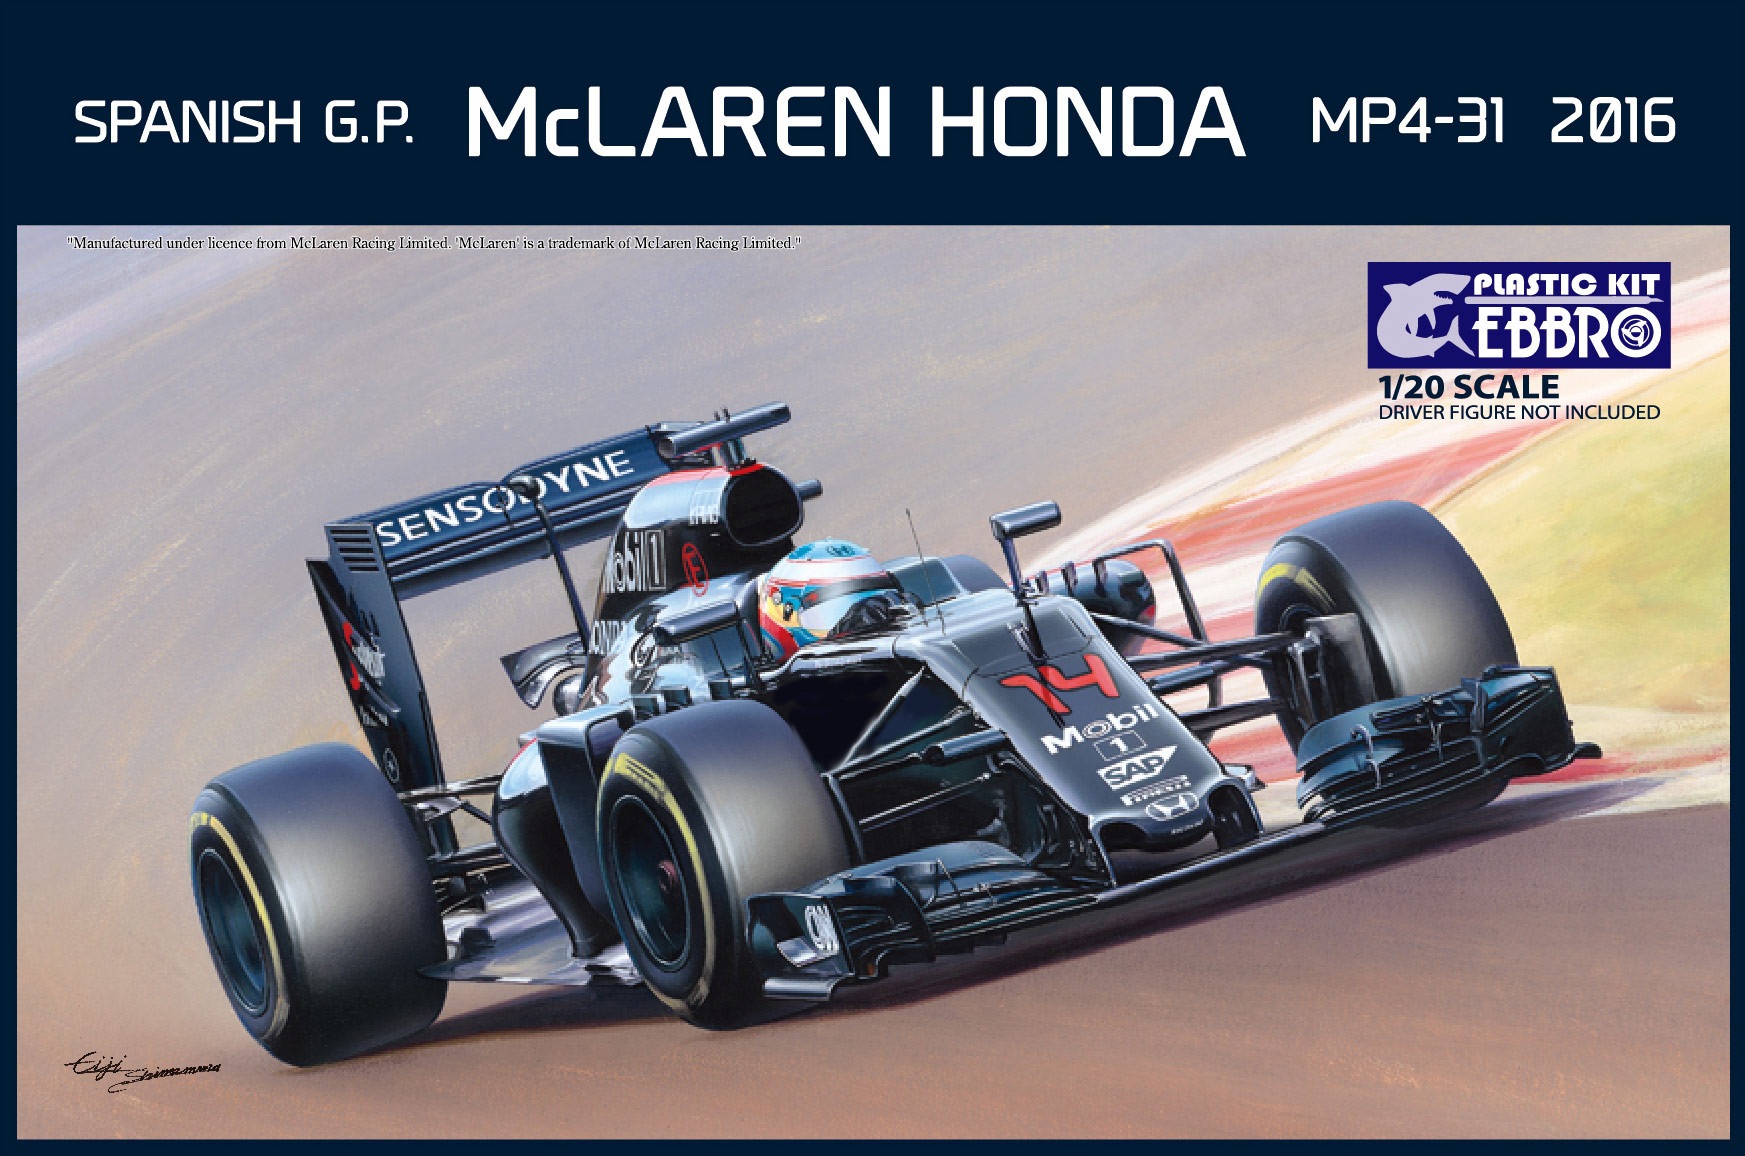 Ebbro McLaren Honda MP4-31 Spanish GP